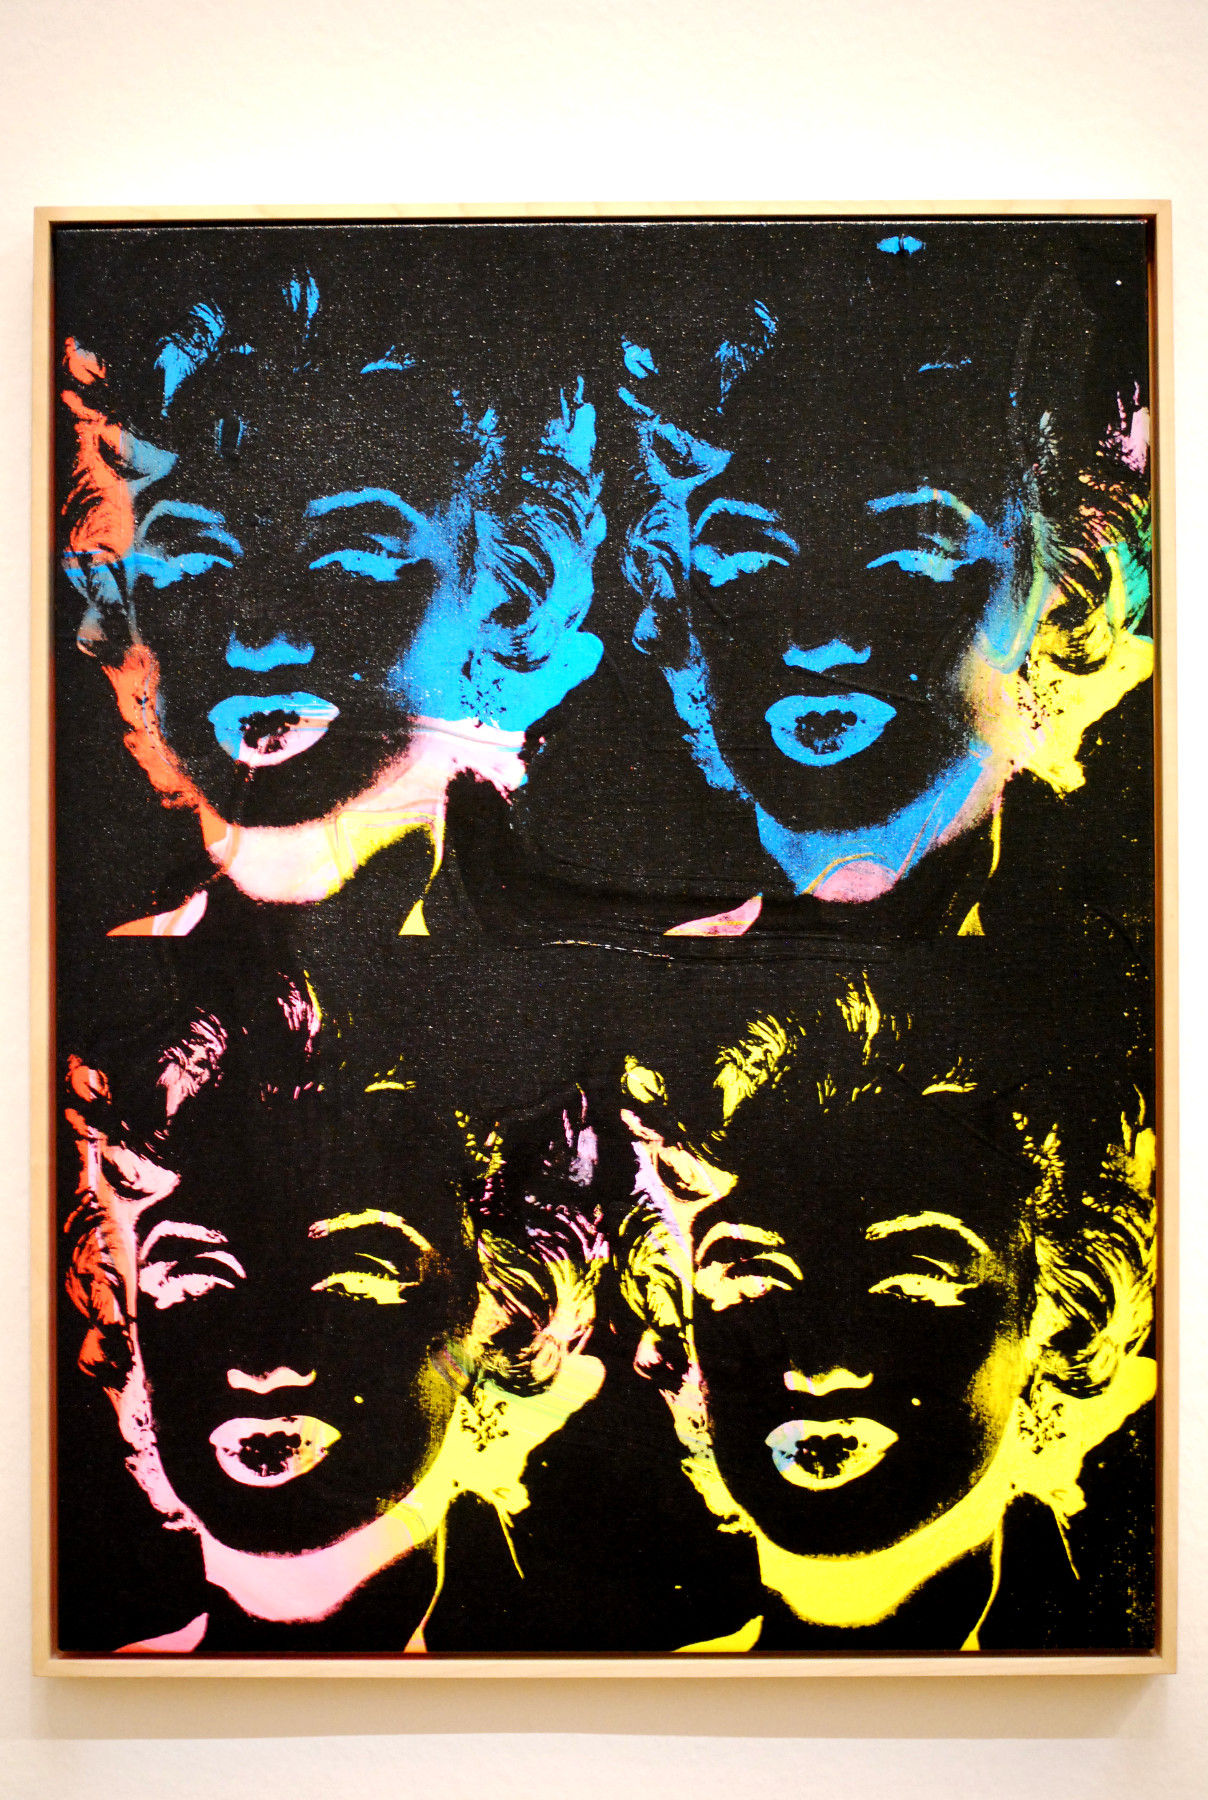 andy-warhol_four-multicoloured-marilyns_reversal-series_1979-1986_silkscreen-on-canvas